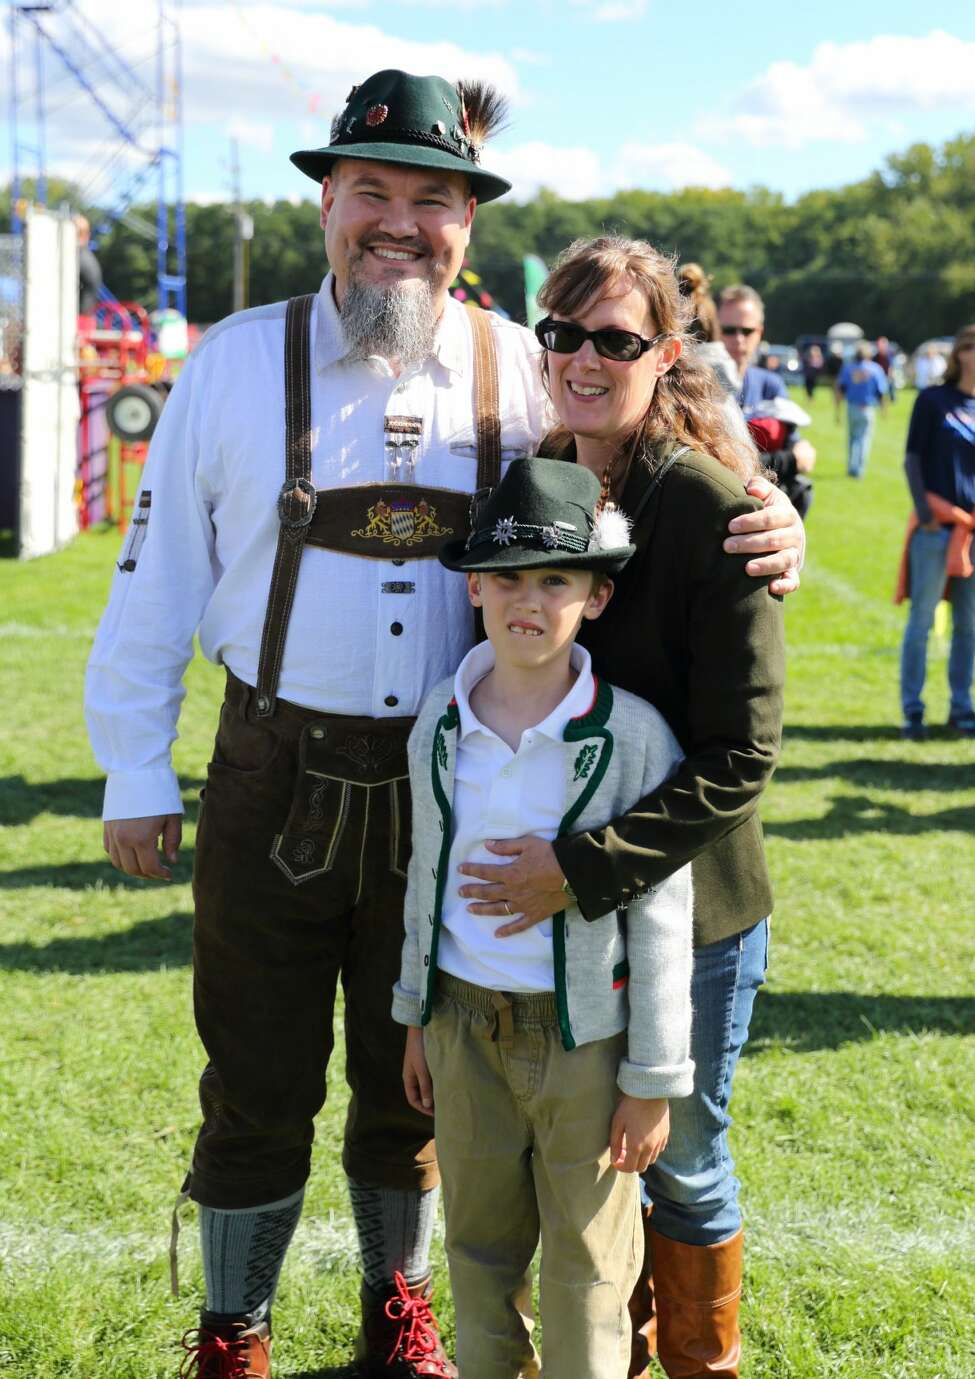 Were you Seen at the 9th Annual Glenville Oktoberfest held at Maalwyck Park in Glenville on Saturday, September 29, 2018?